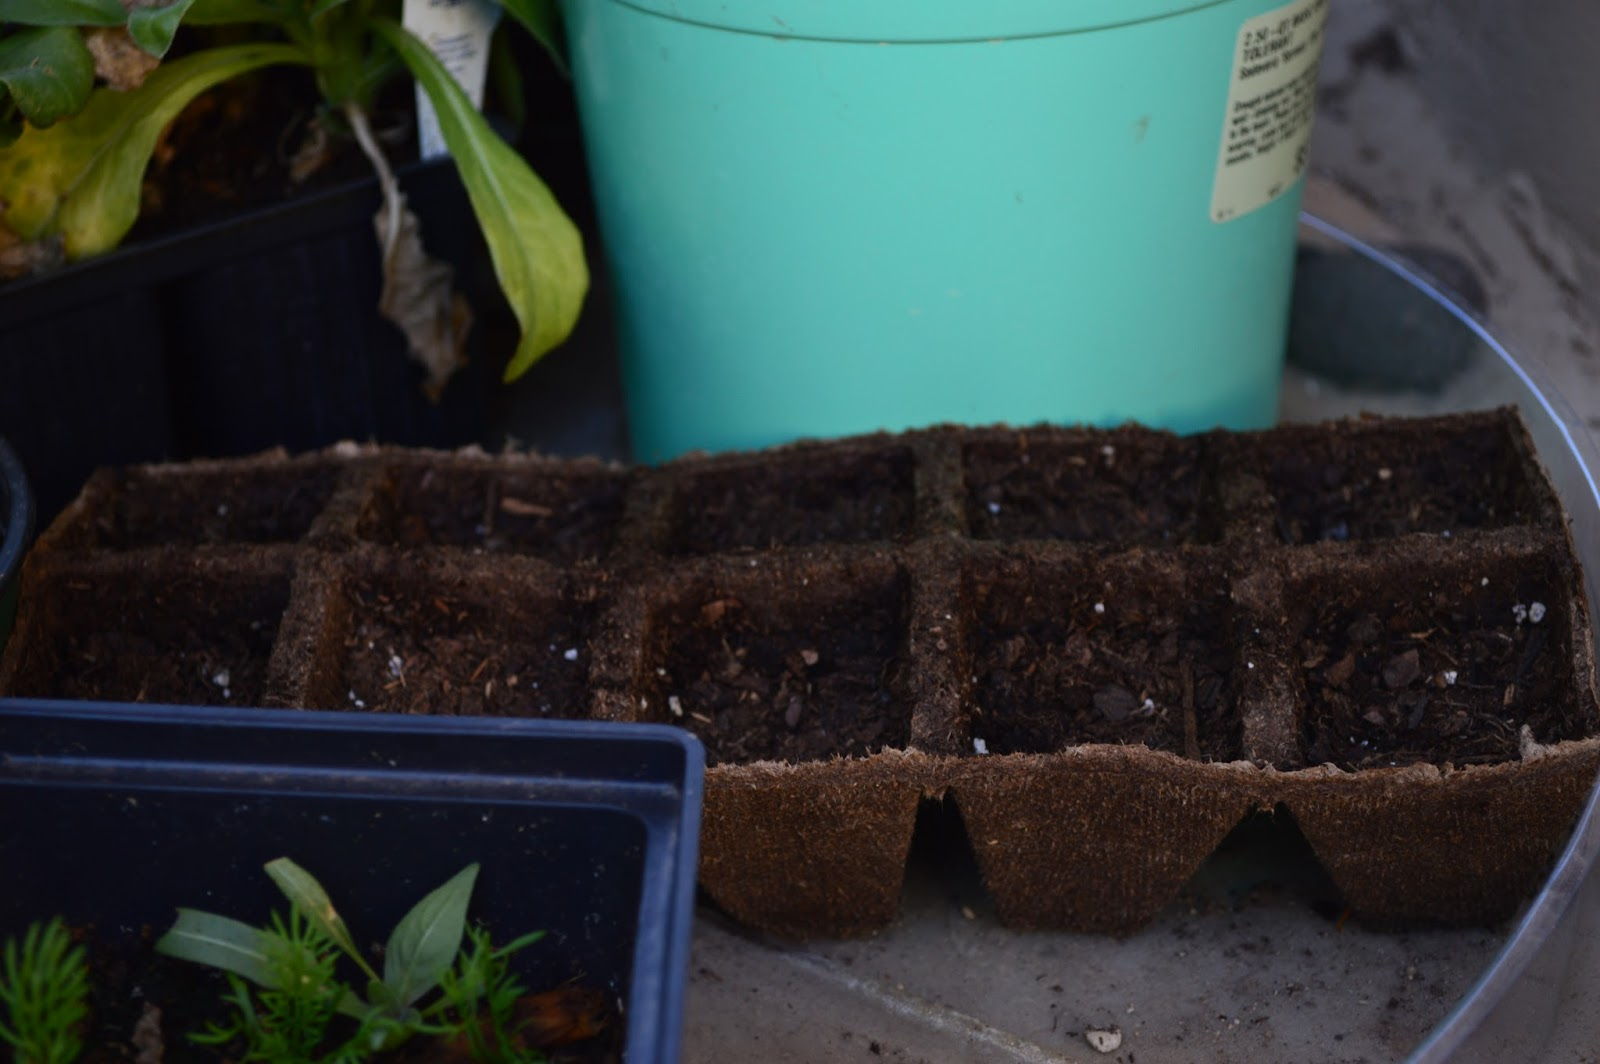 Planting times, starting garden seeds